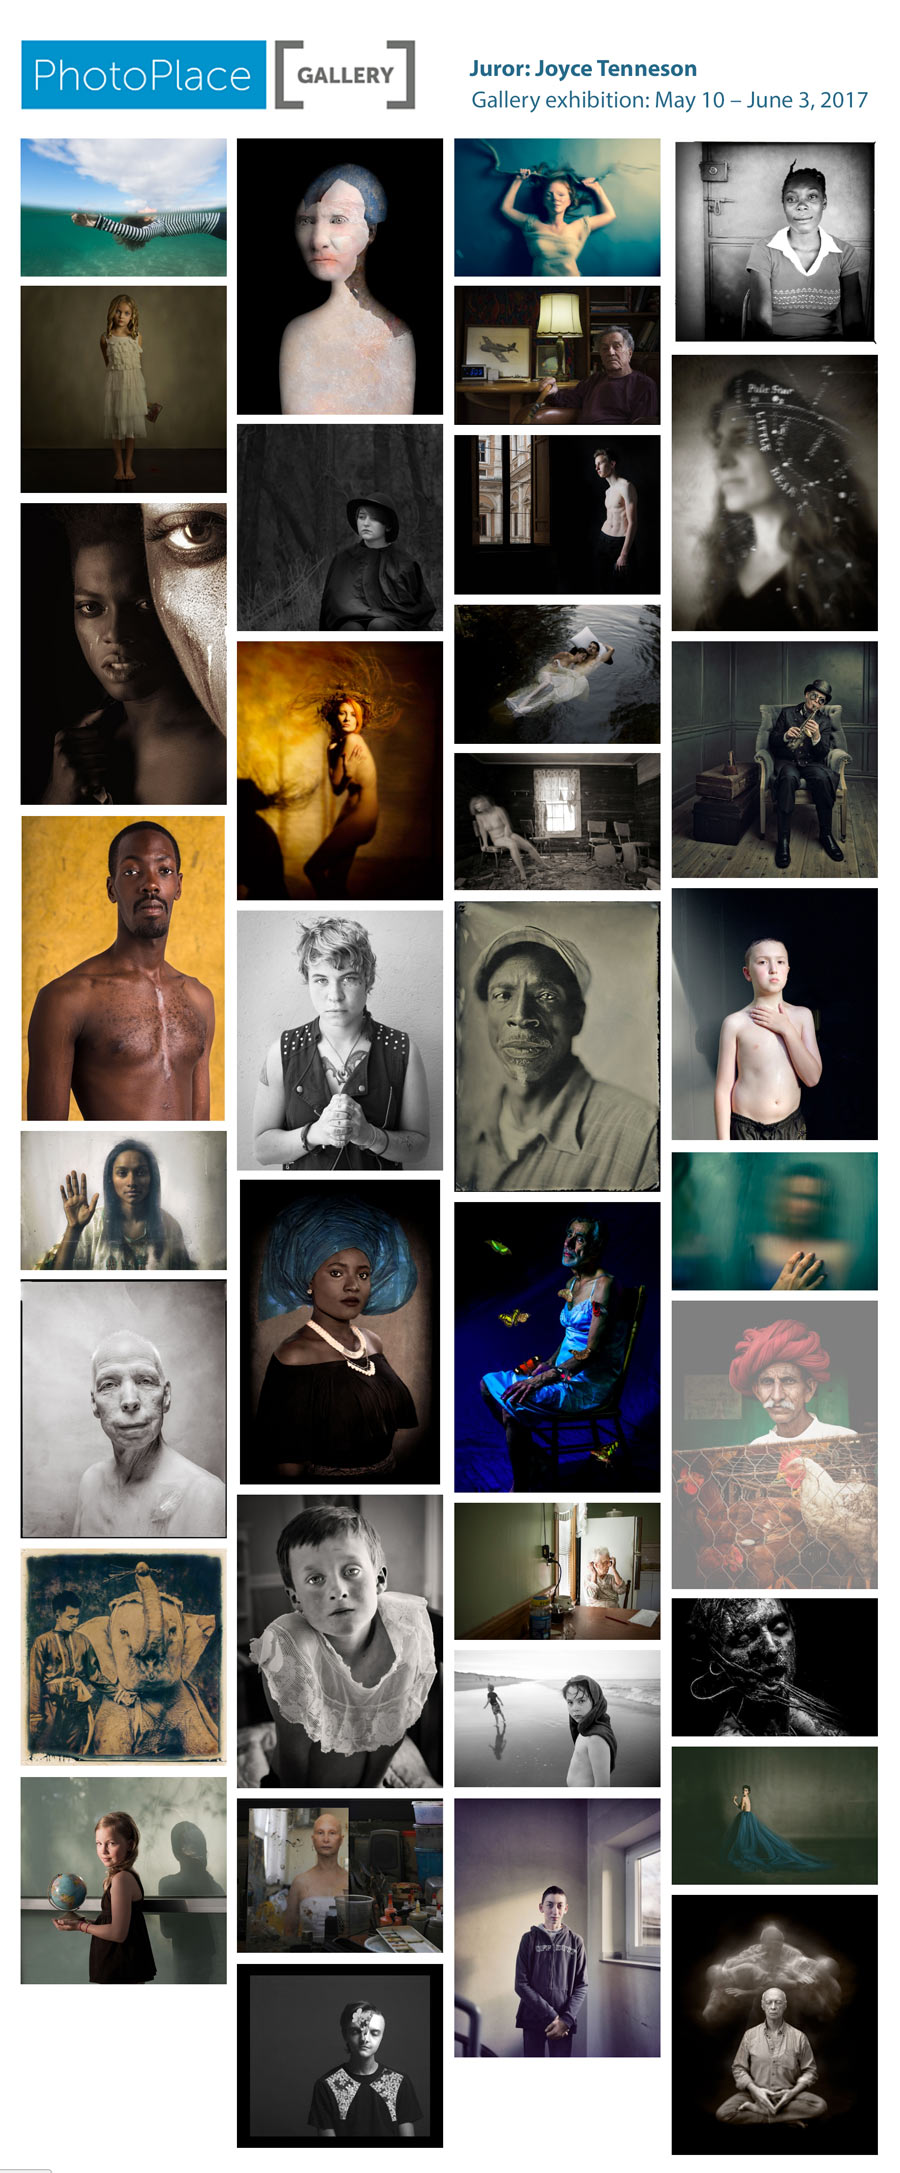 Intimate Portraits, juried by Joyce Tenneson at PhotoPlace Gallery in Middlebury, Vermont